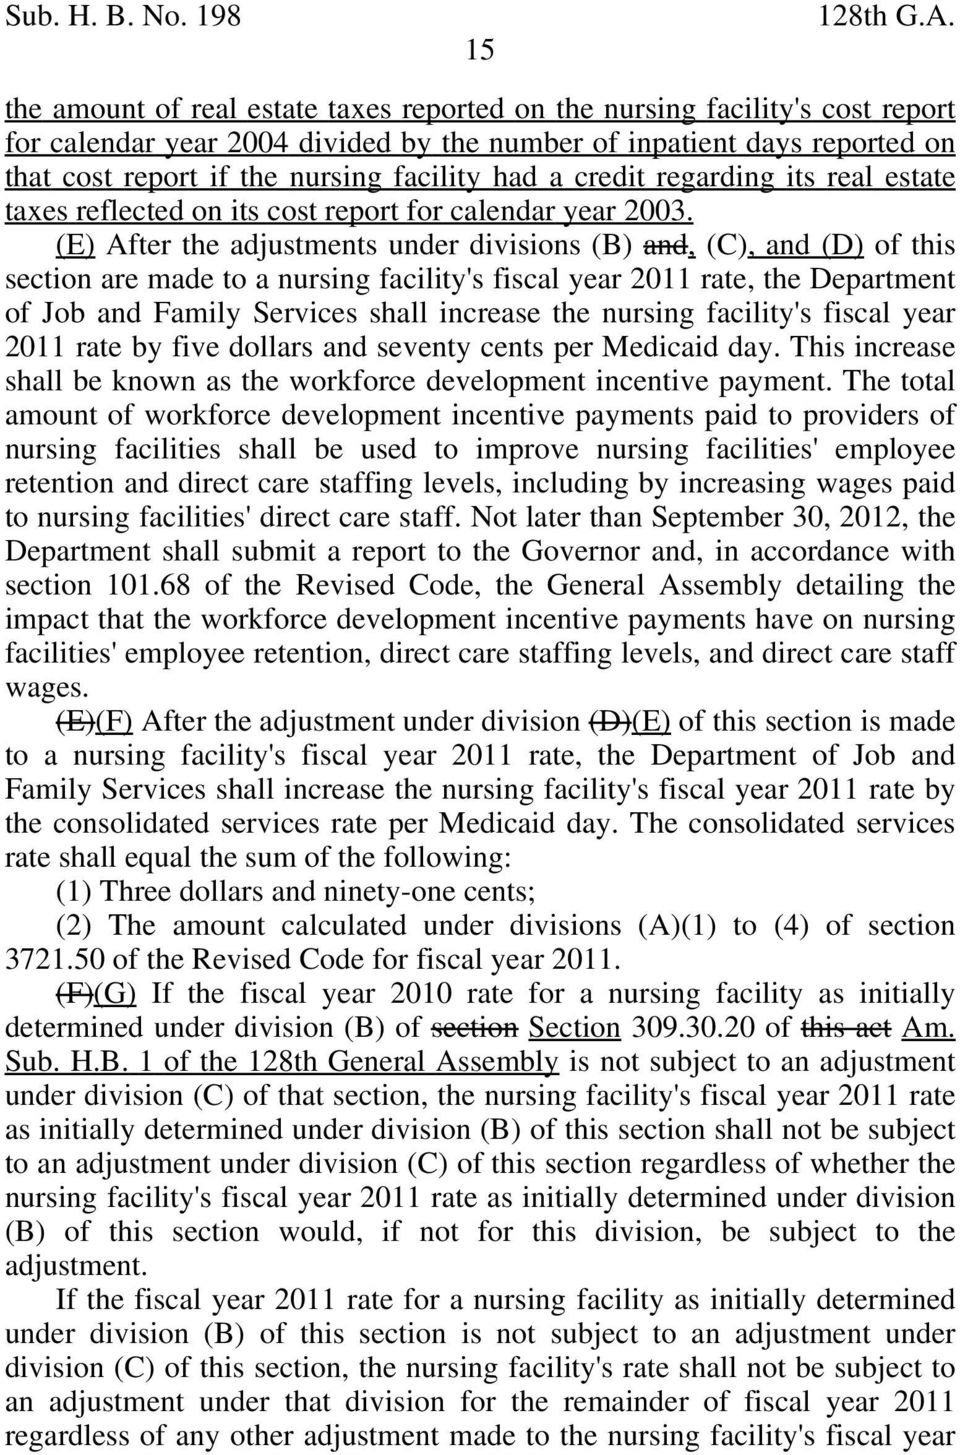 (E) After the adjustments under divisions (B) and, (C), and (D) of this section are made to a nursing facility's fiscal year 2011 rate, the Department of Job and Family Services shall increase the